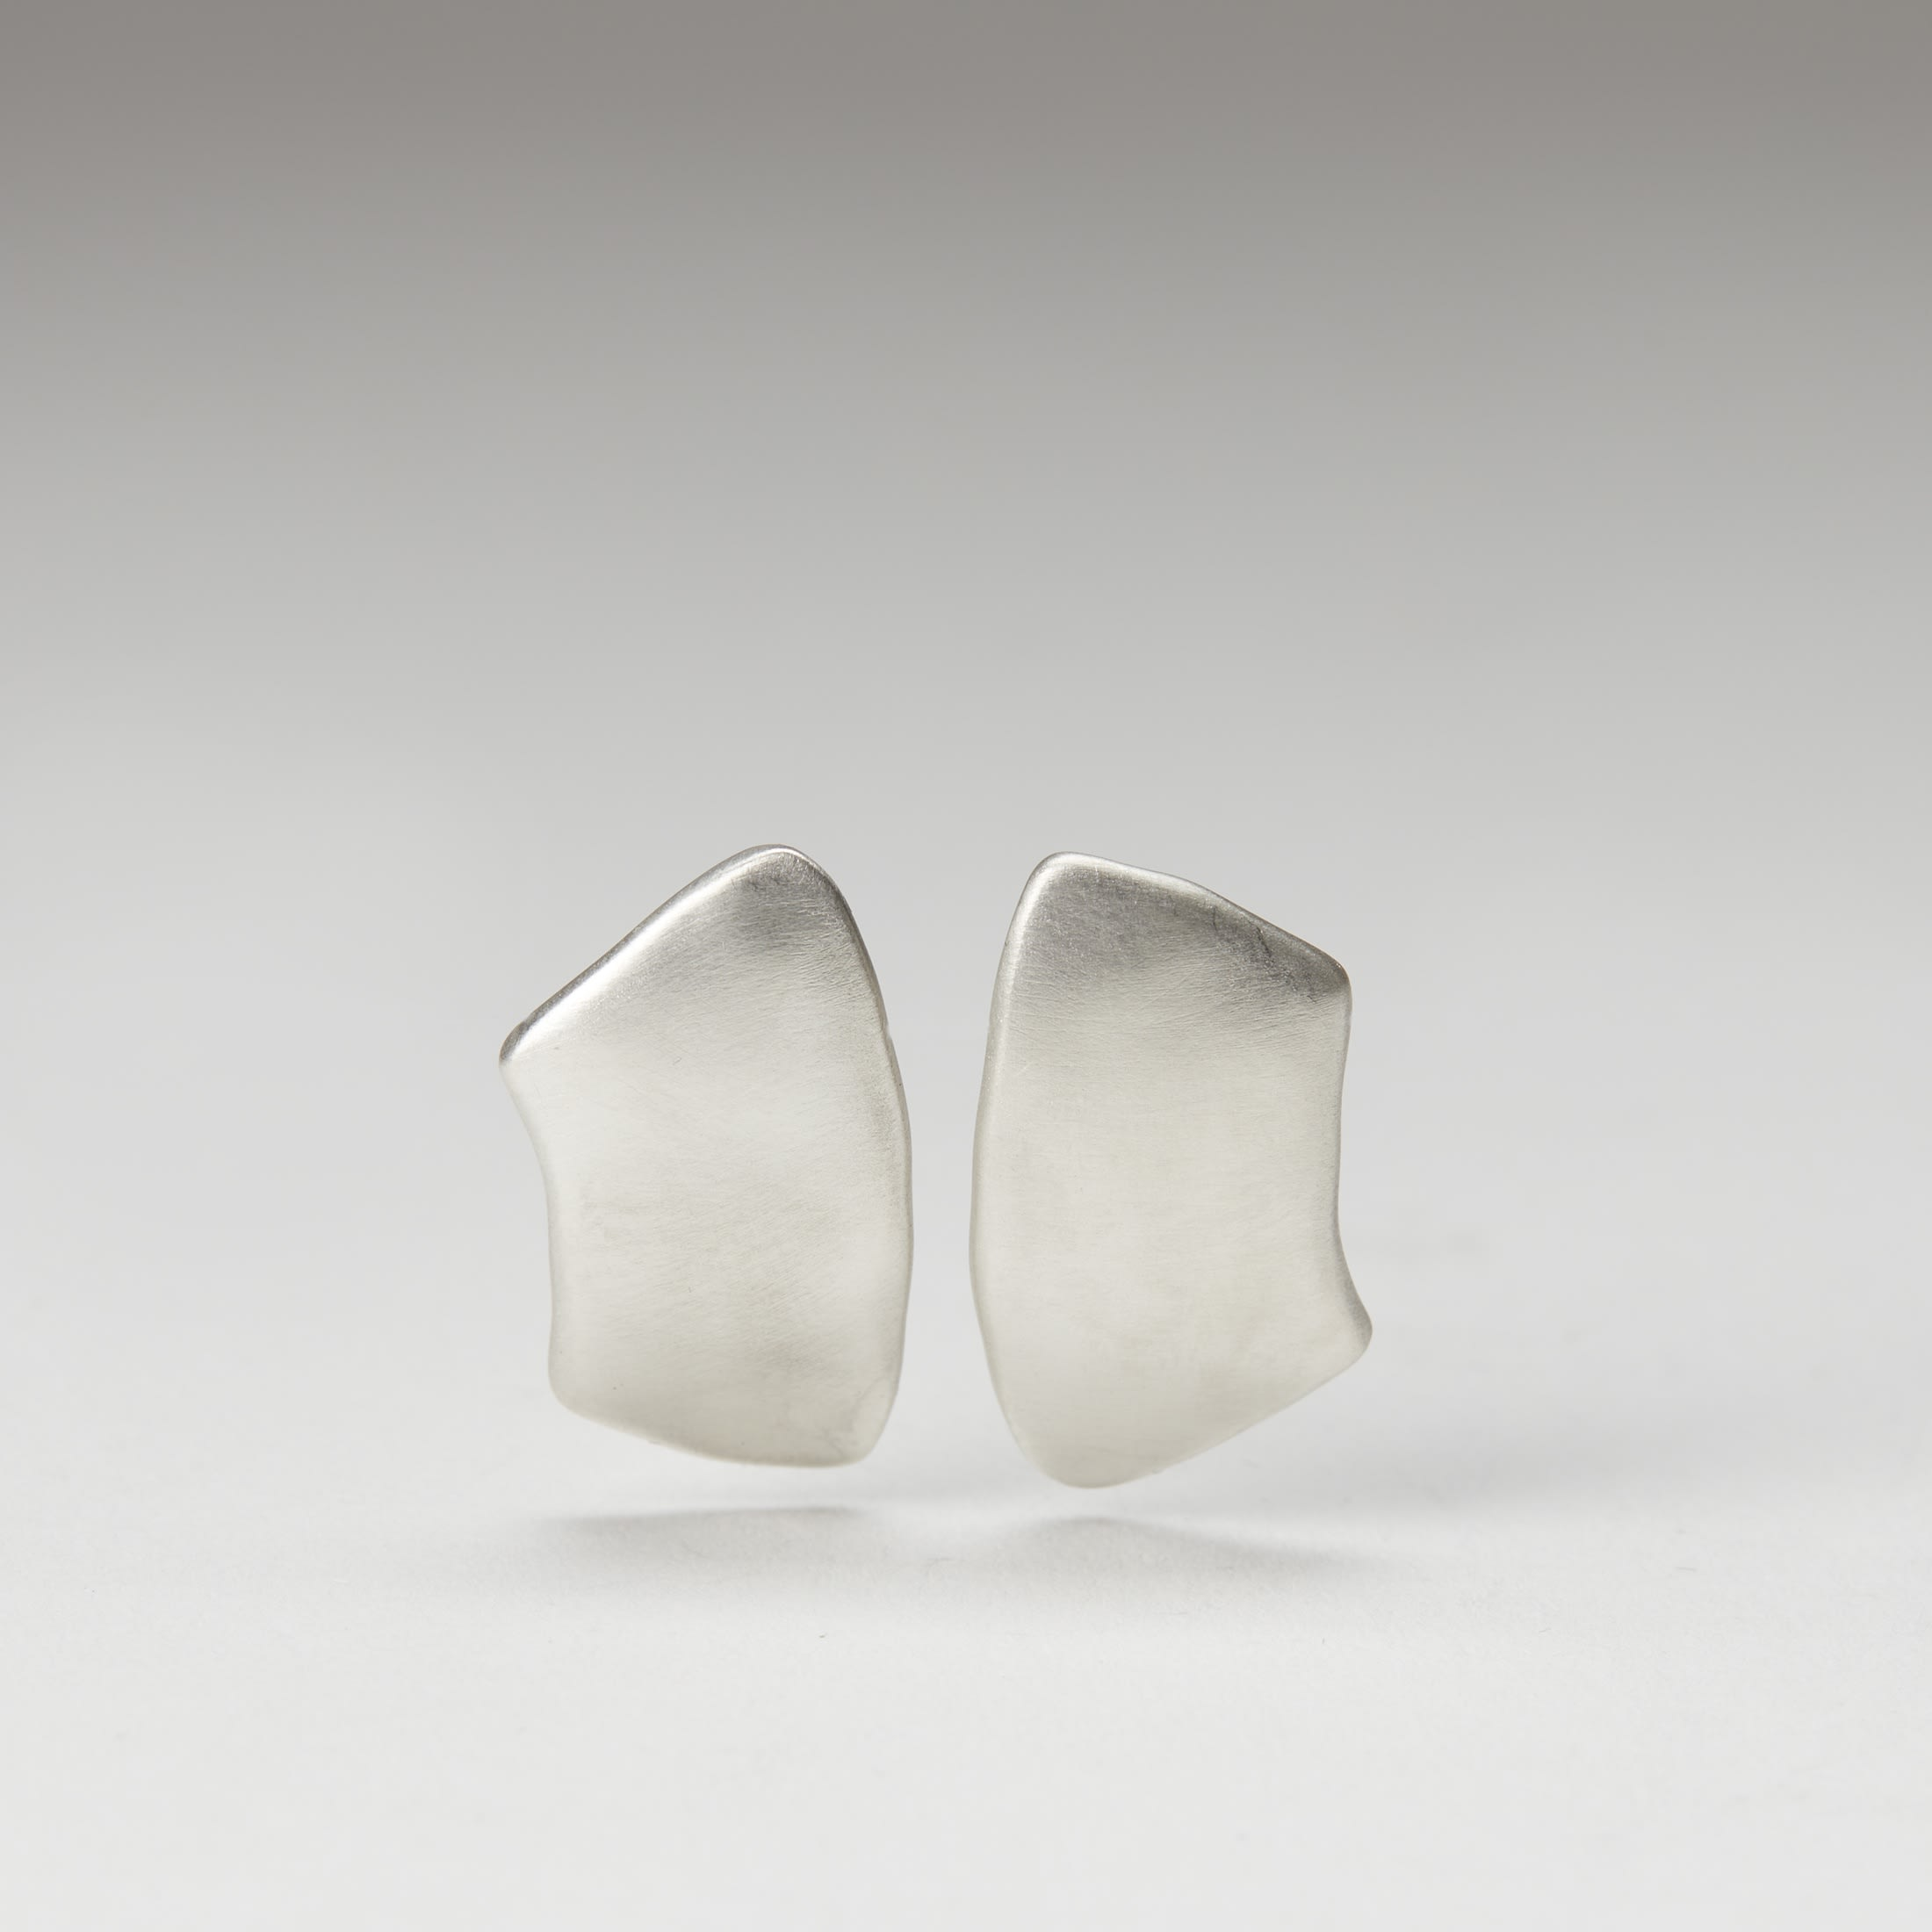 Kate Ruck earrings - Form & Concept Gallery